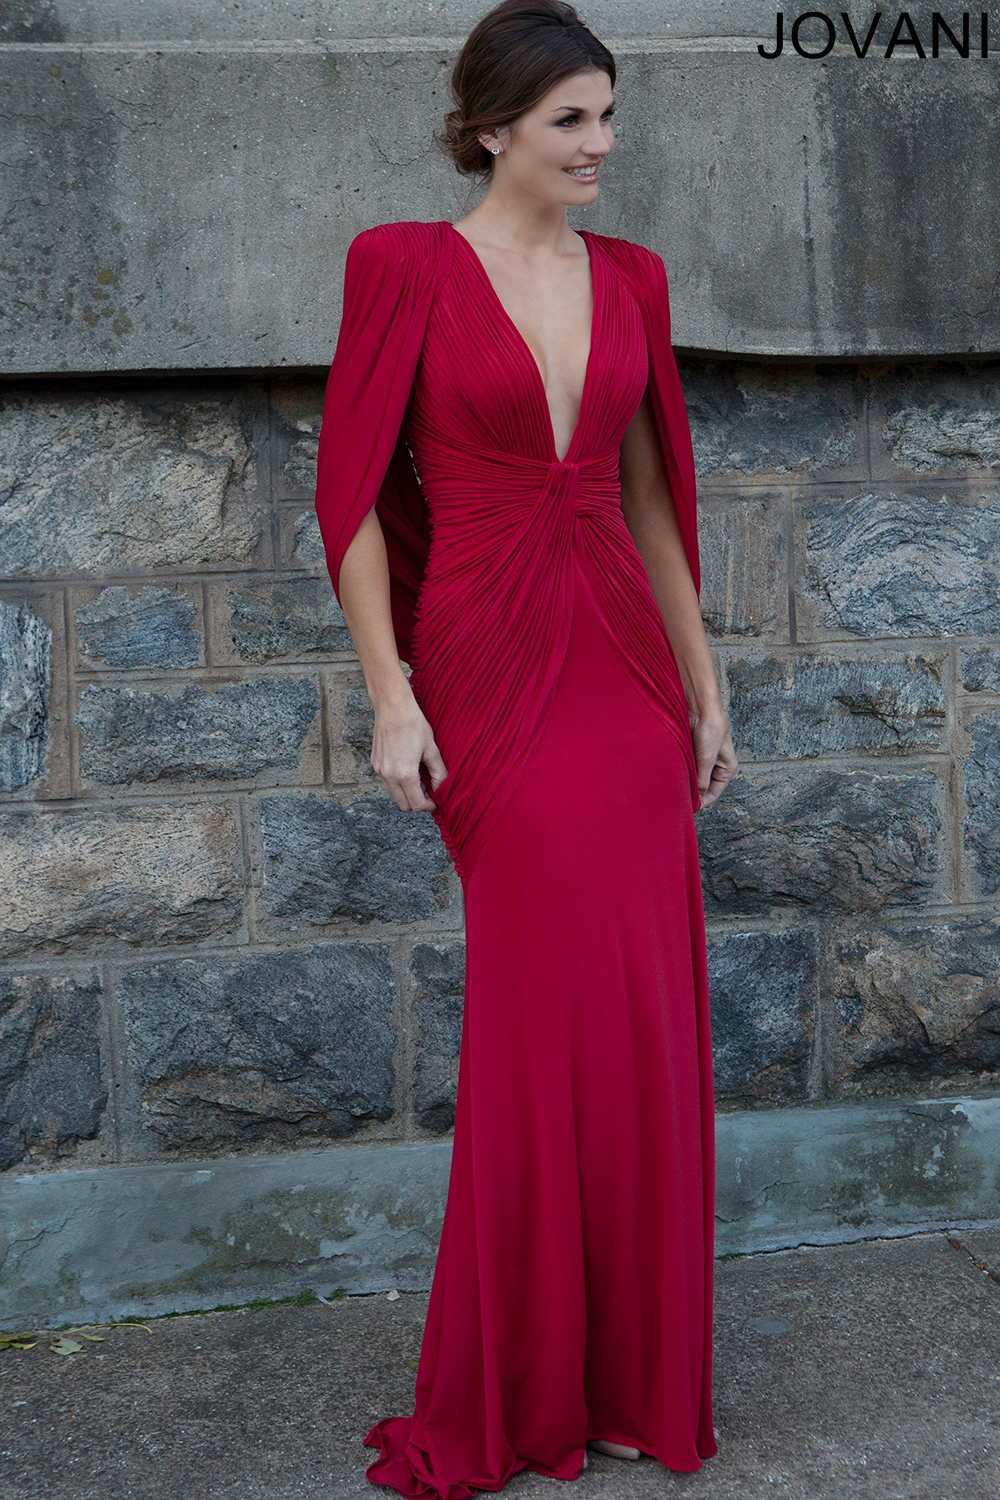 70ecef5481b9 Jovani Red Evening Gown